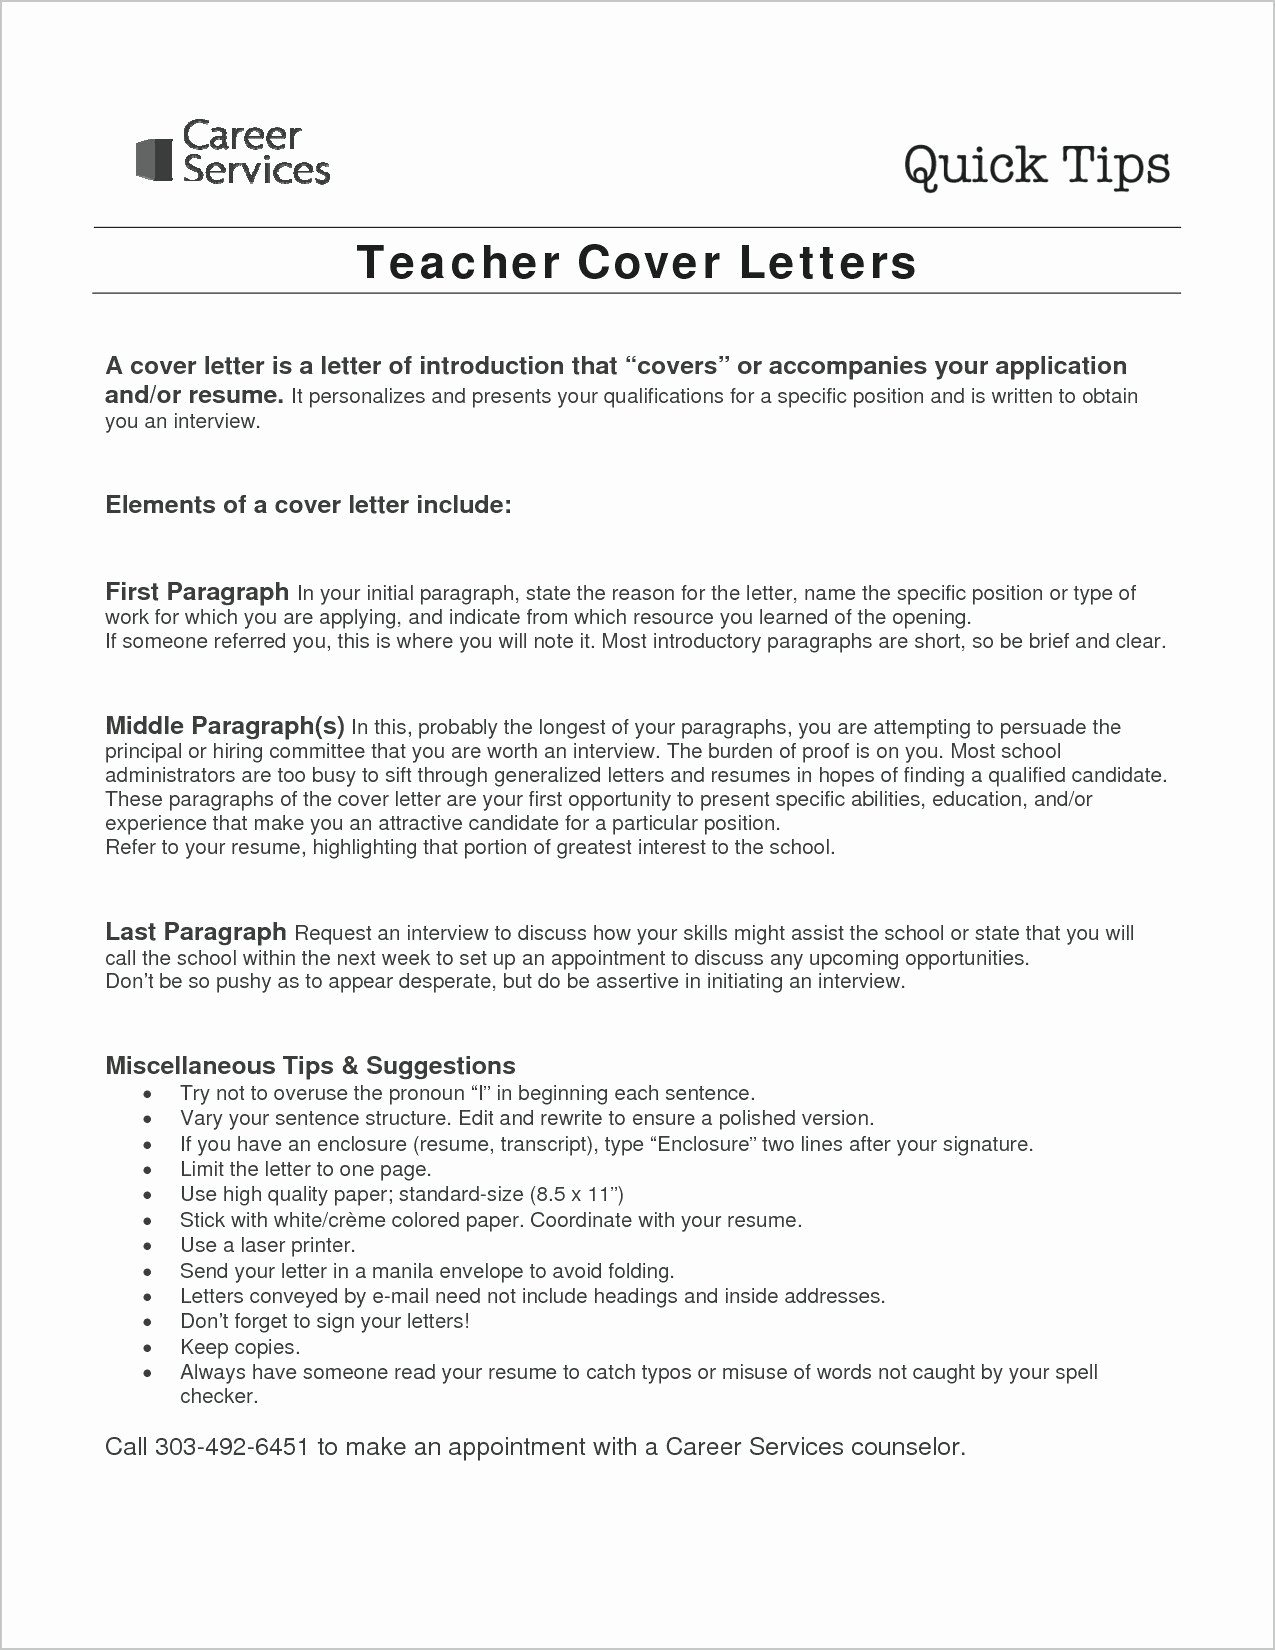 Post Free Resume Best Sites to Post Resume Student Sample